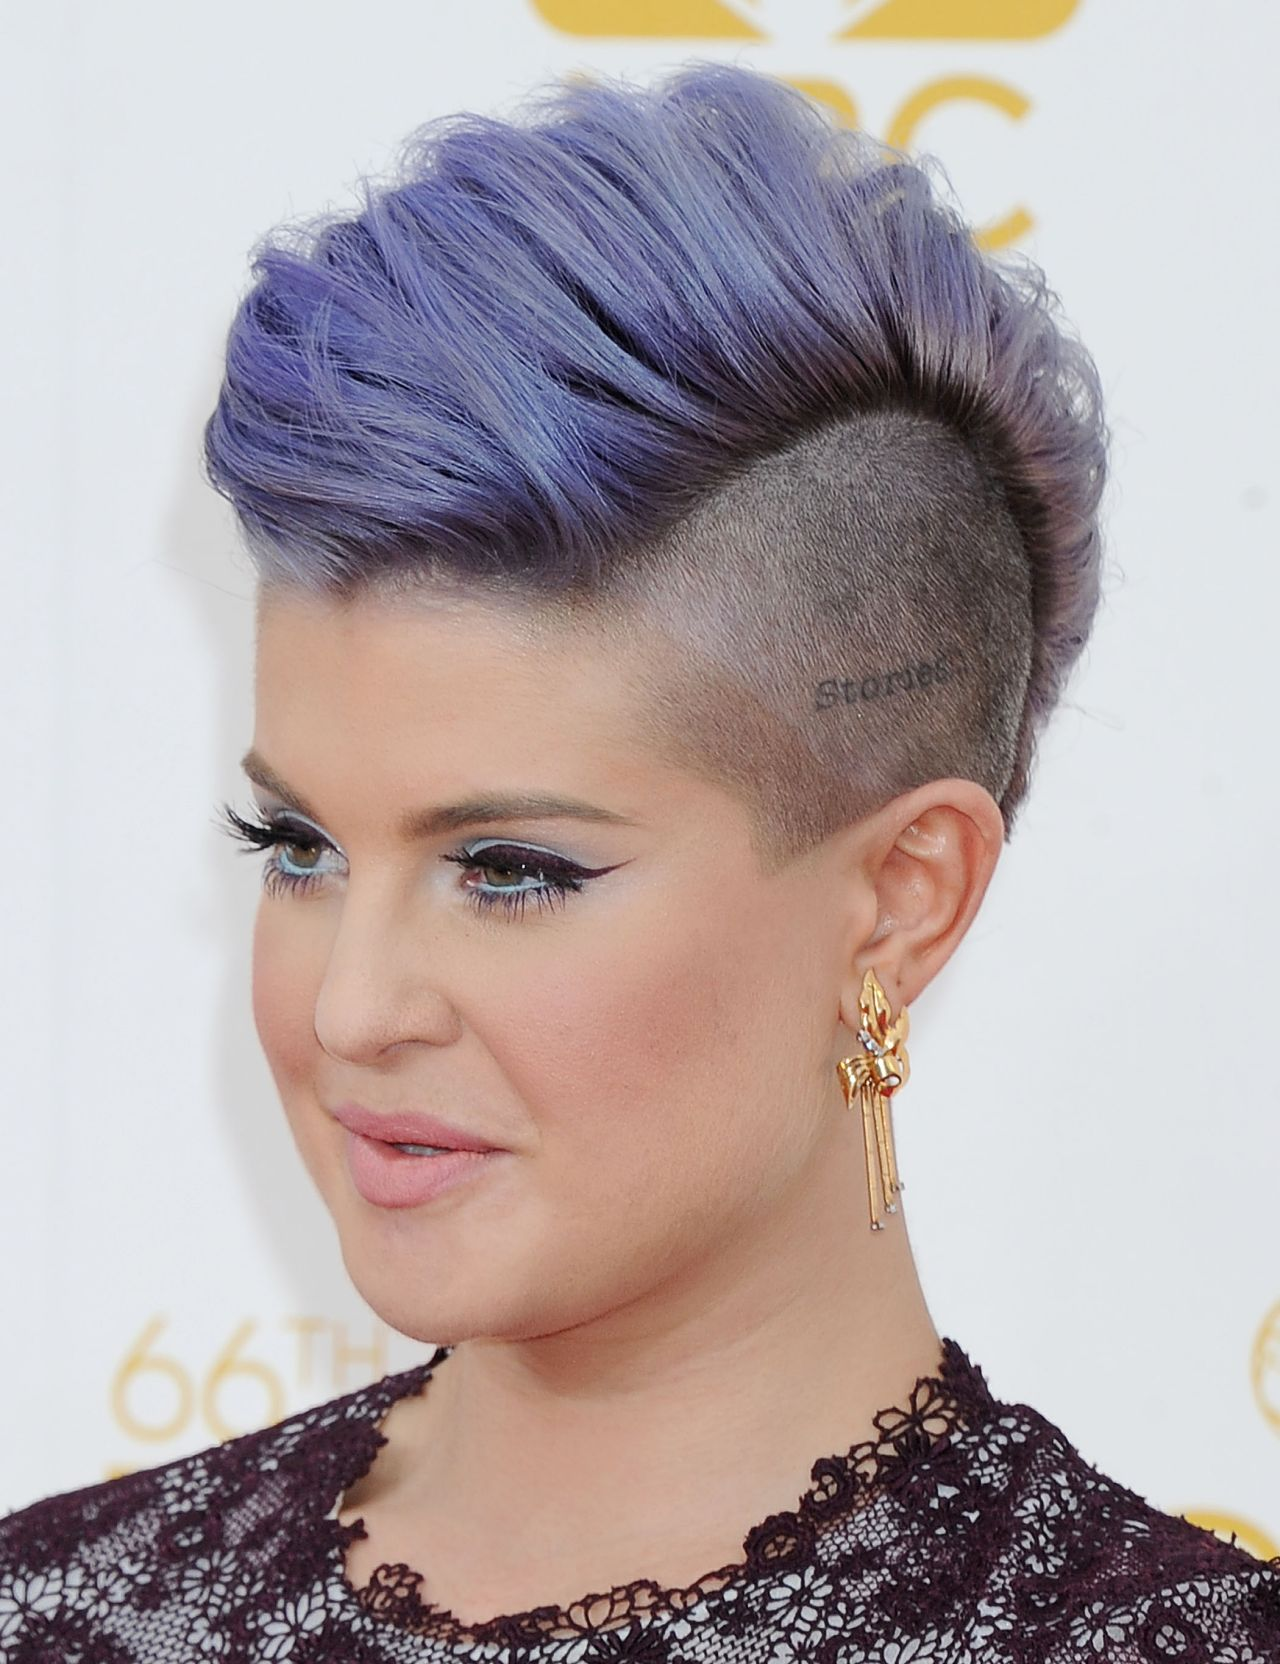 kelly osbourne one word mp3